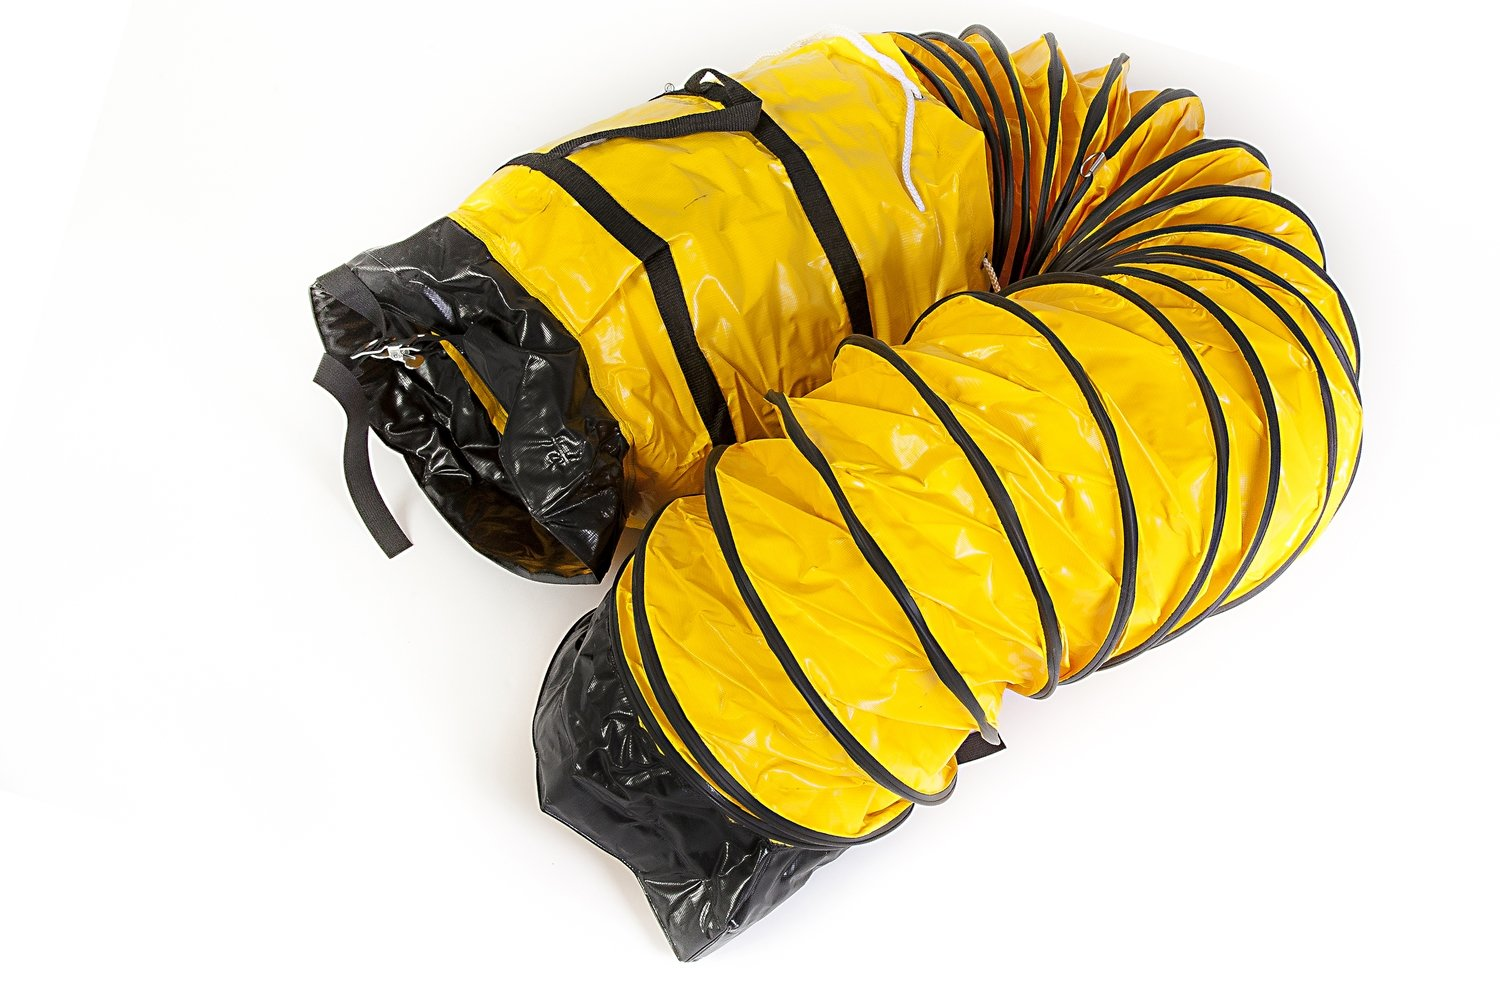 Miniveyor Air Bag Duct 300mm dia. x 7.5m long Flexible Duct with Storage Bag